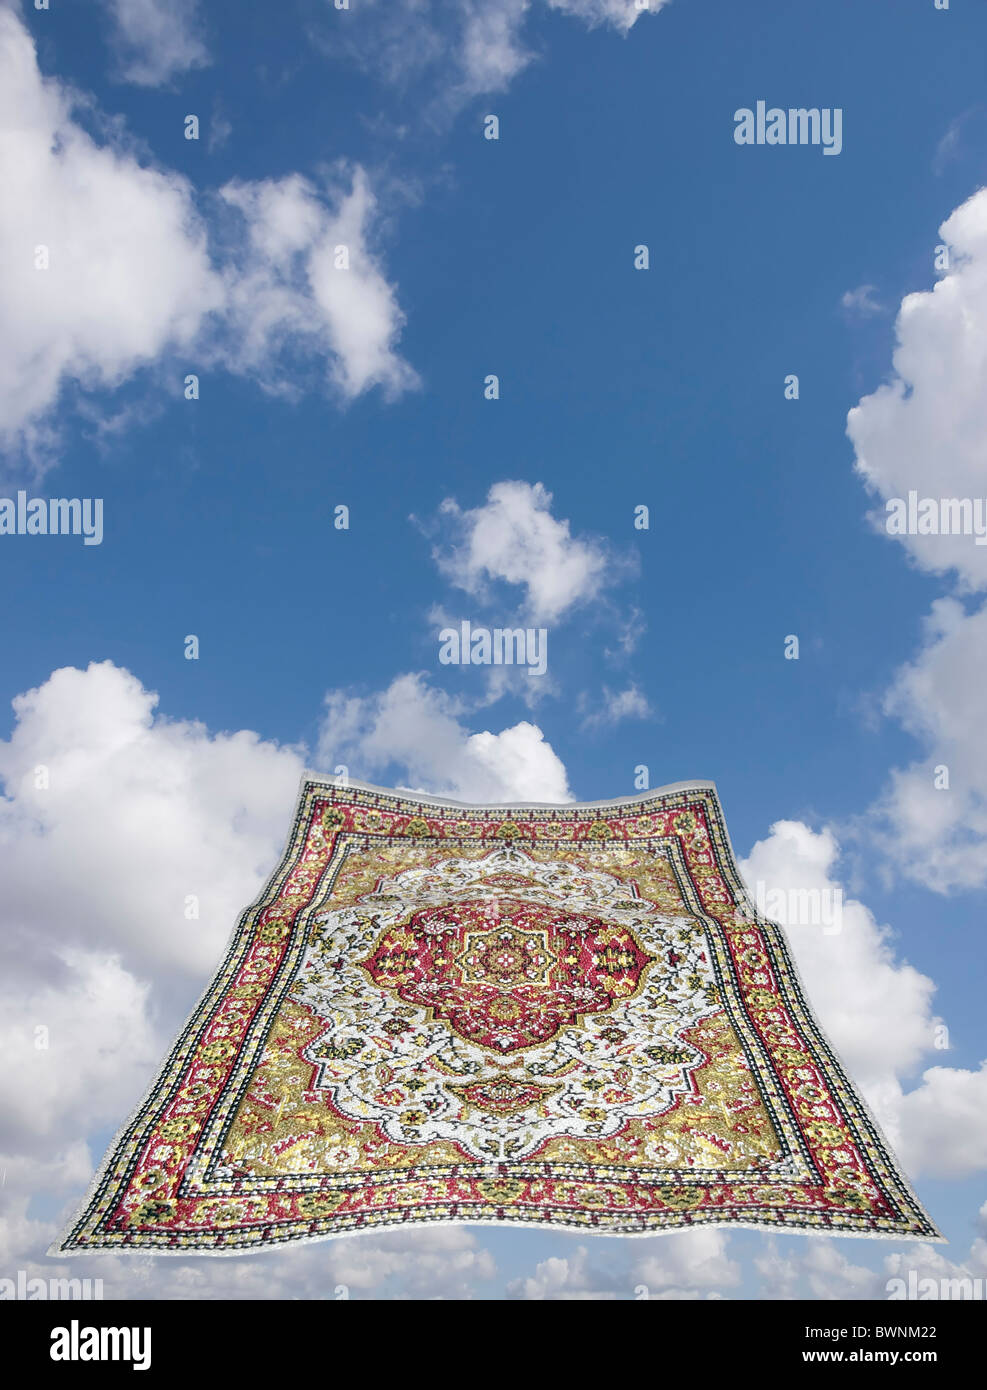 magic carpet in a blue sky Stock Photo  33053498   Alamy magic carpet in a blue sky